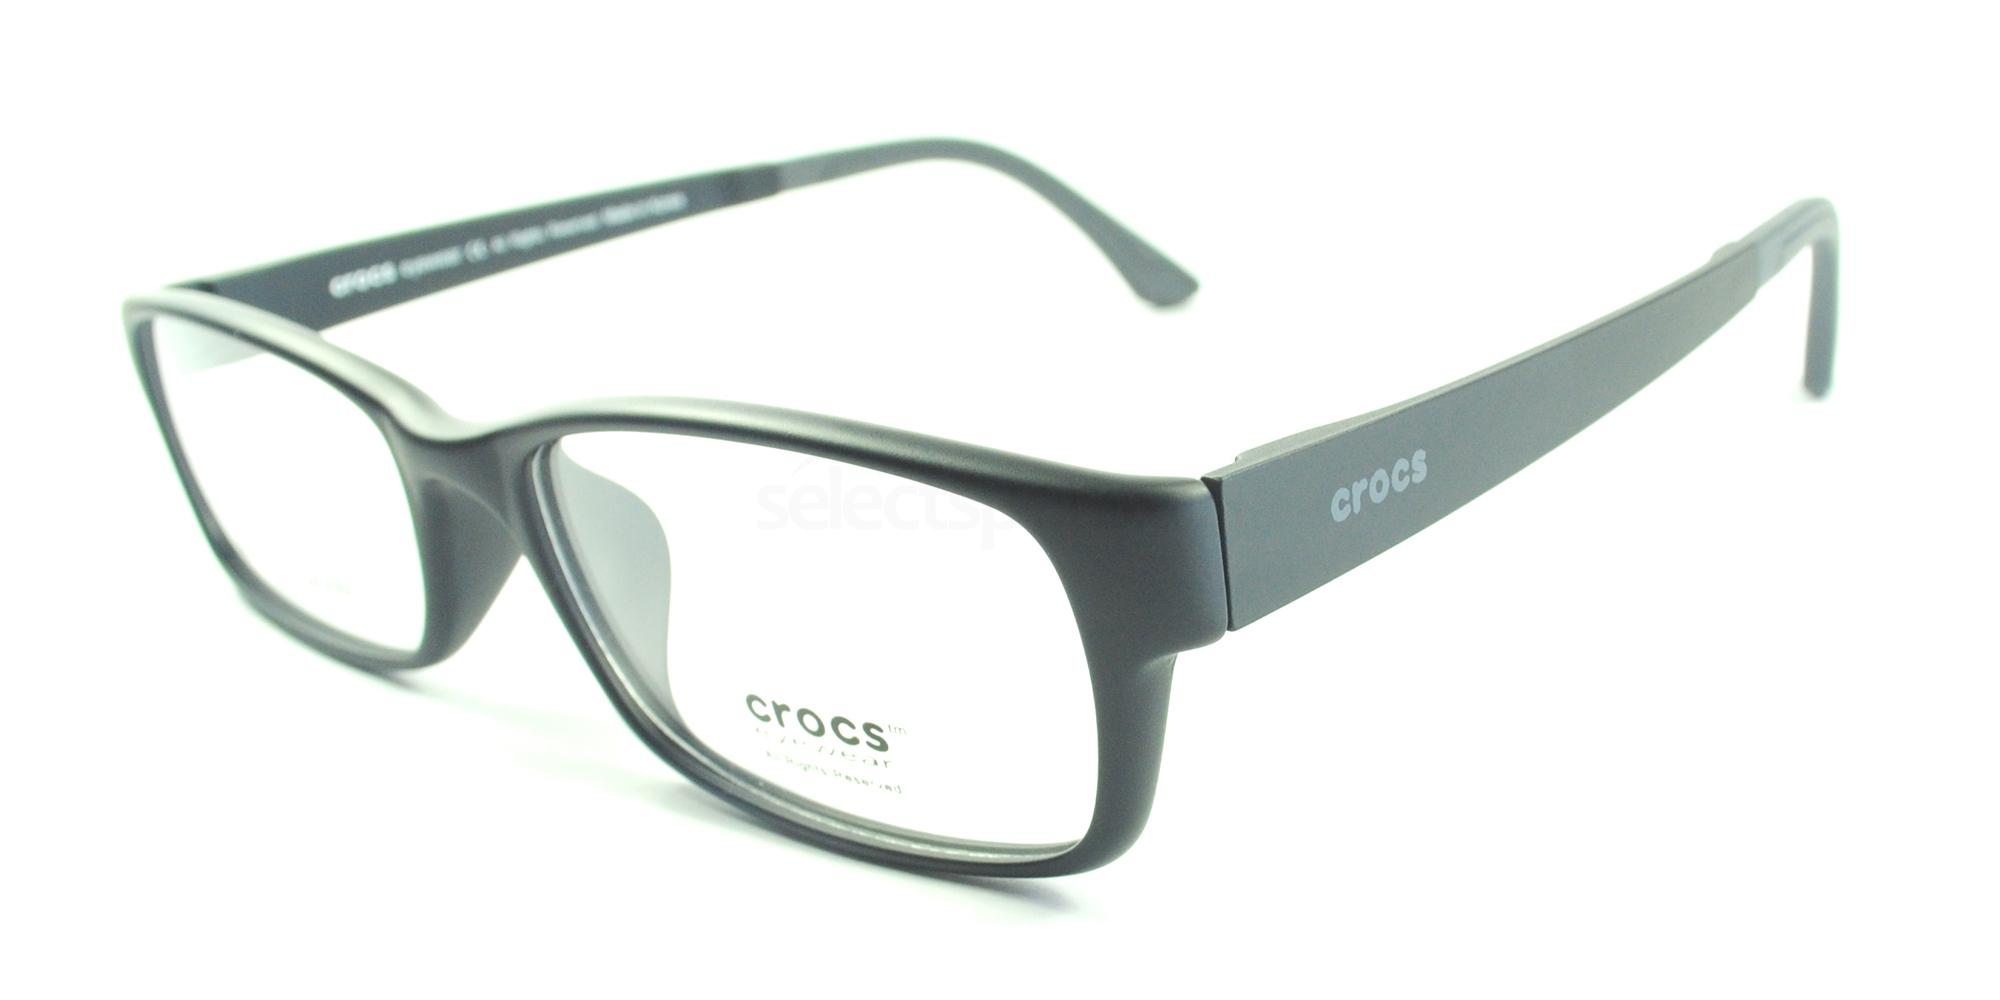 20BK CF624 Glasses, Crocs Eyewear